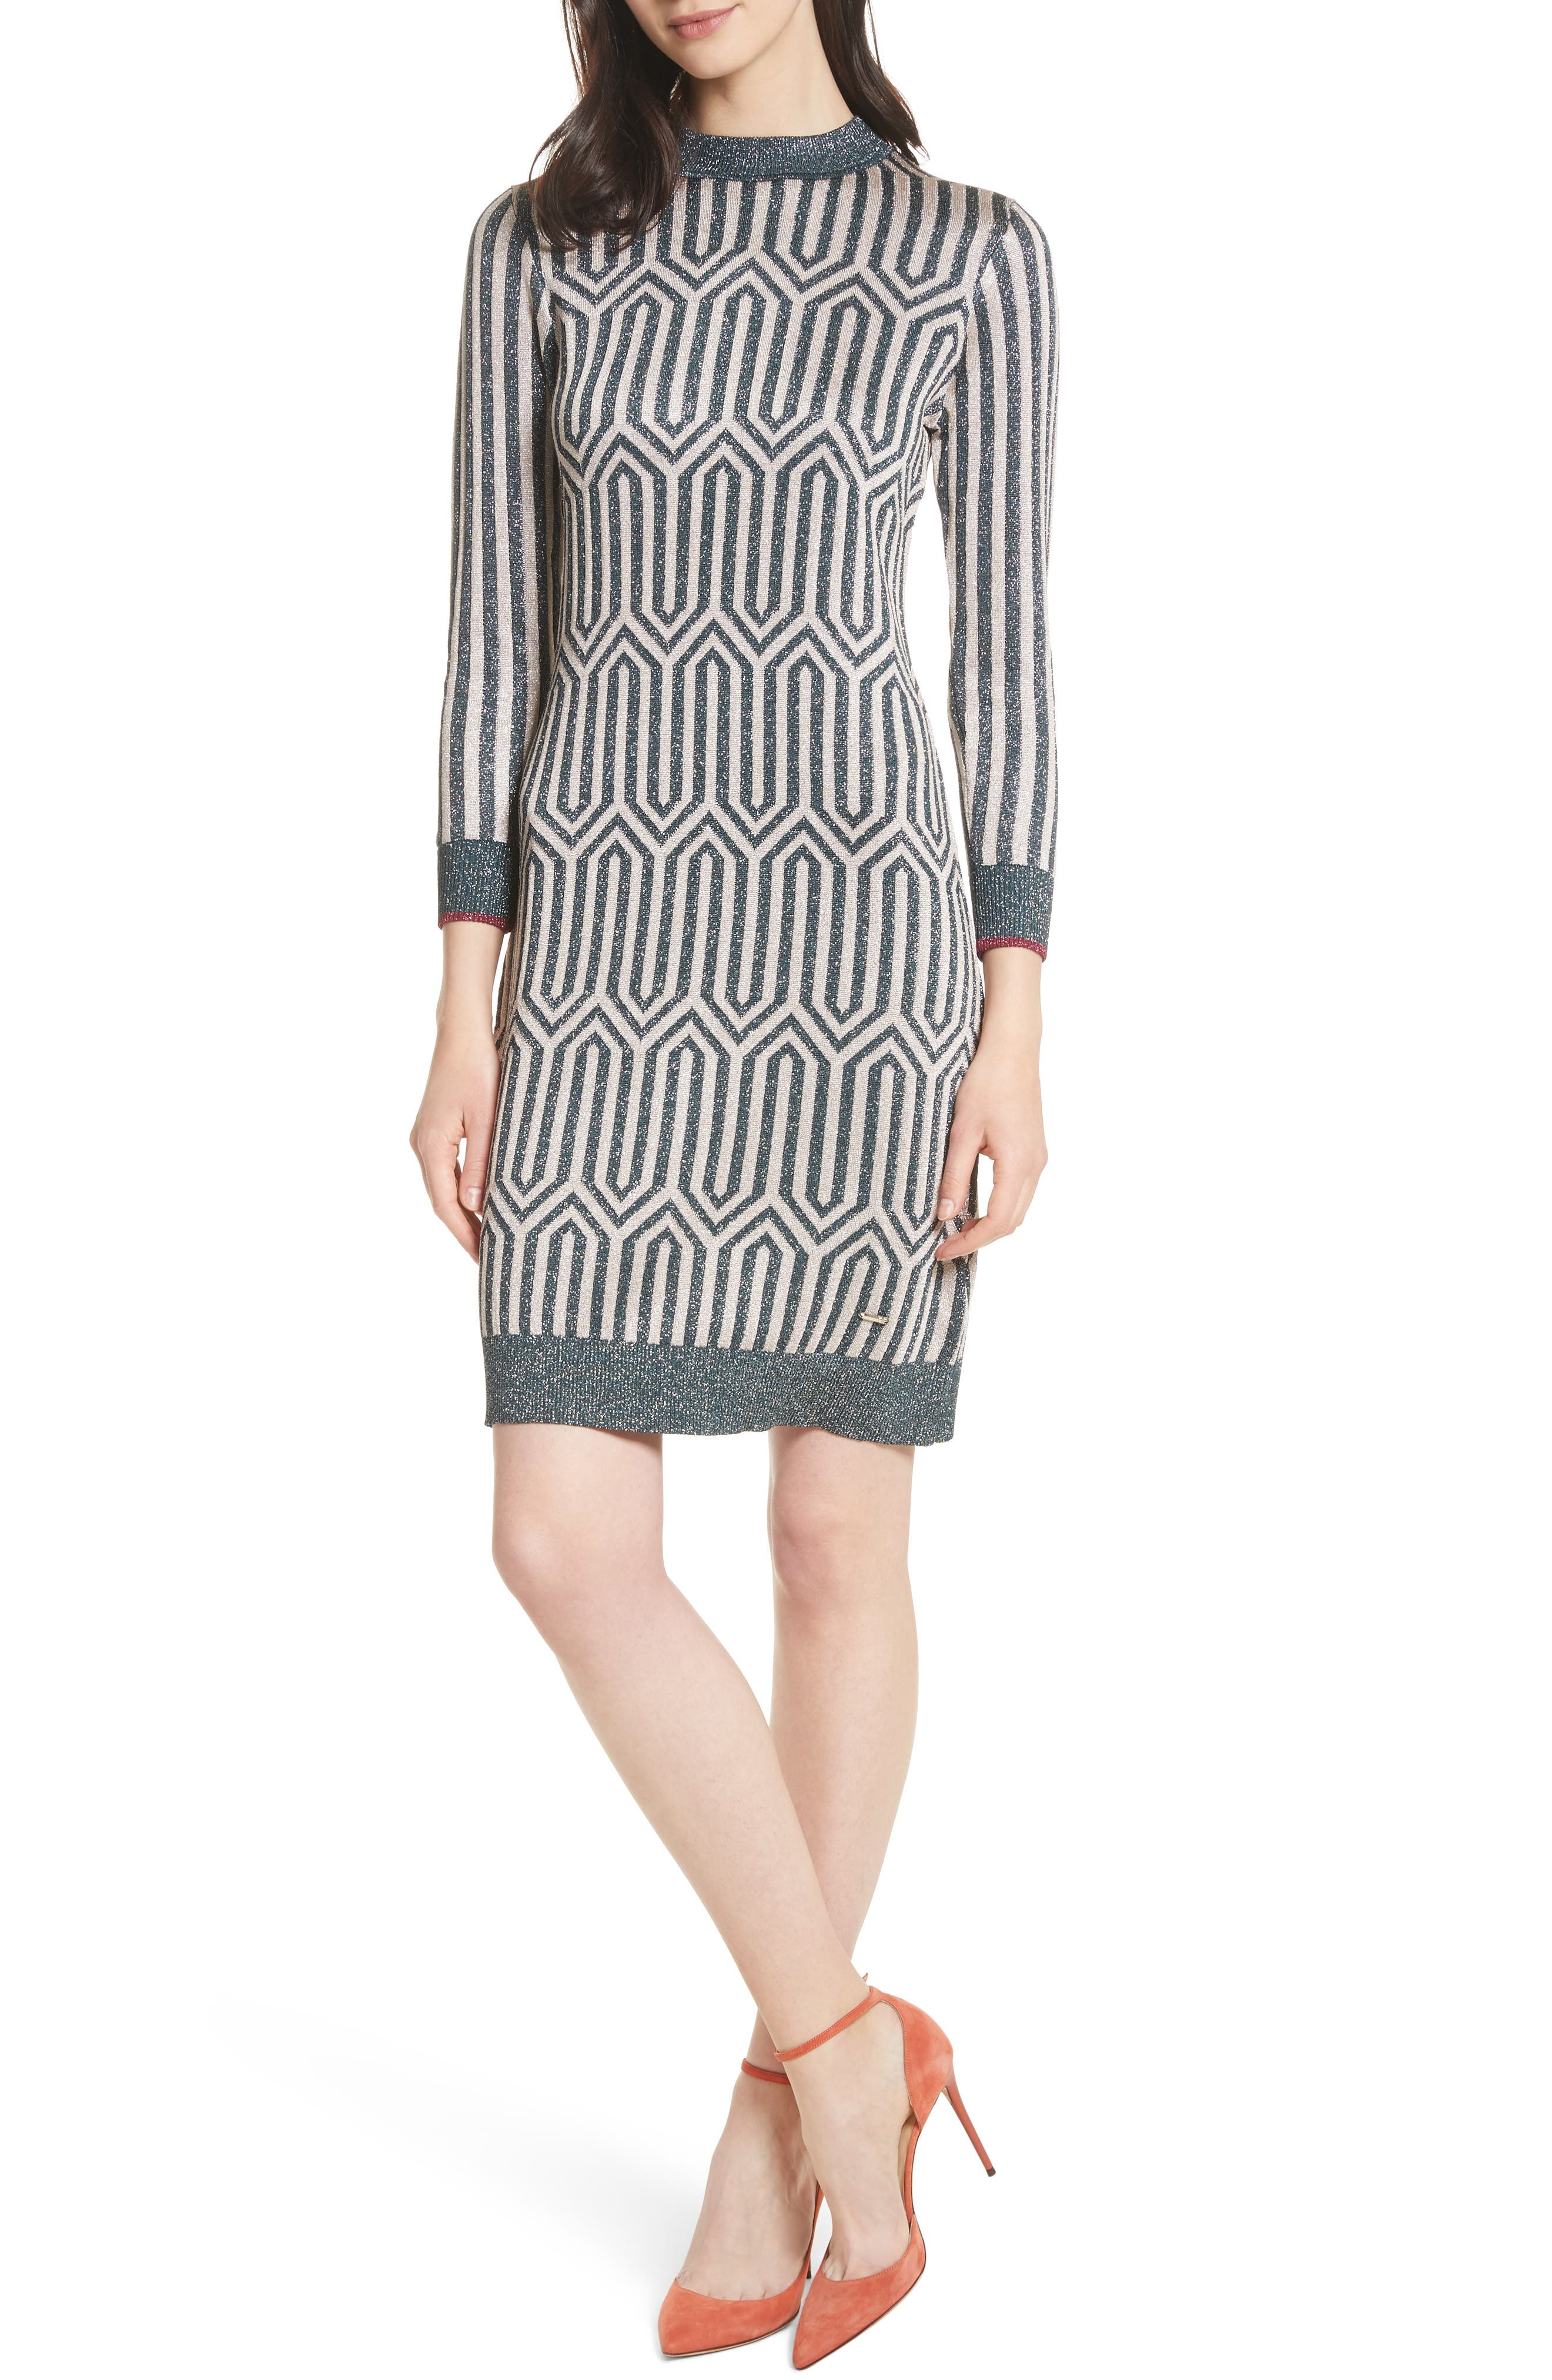 Metallic Knit Dress,                             Main thumbnail 1, color,                             440